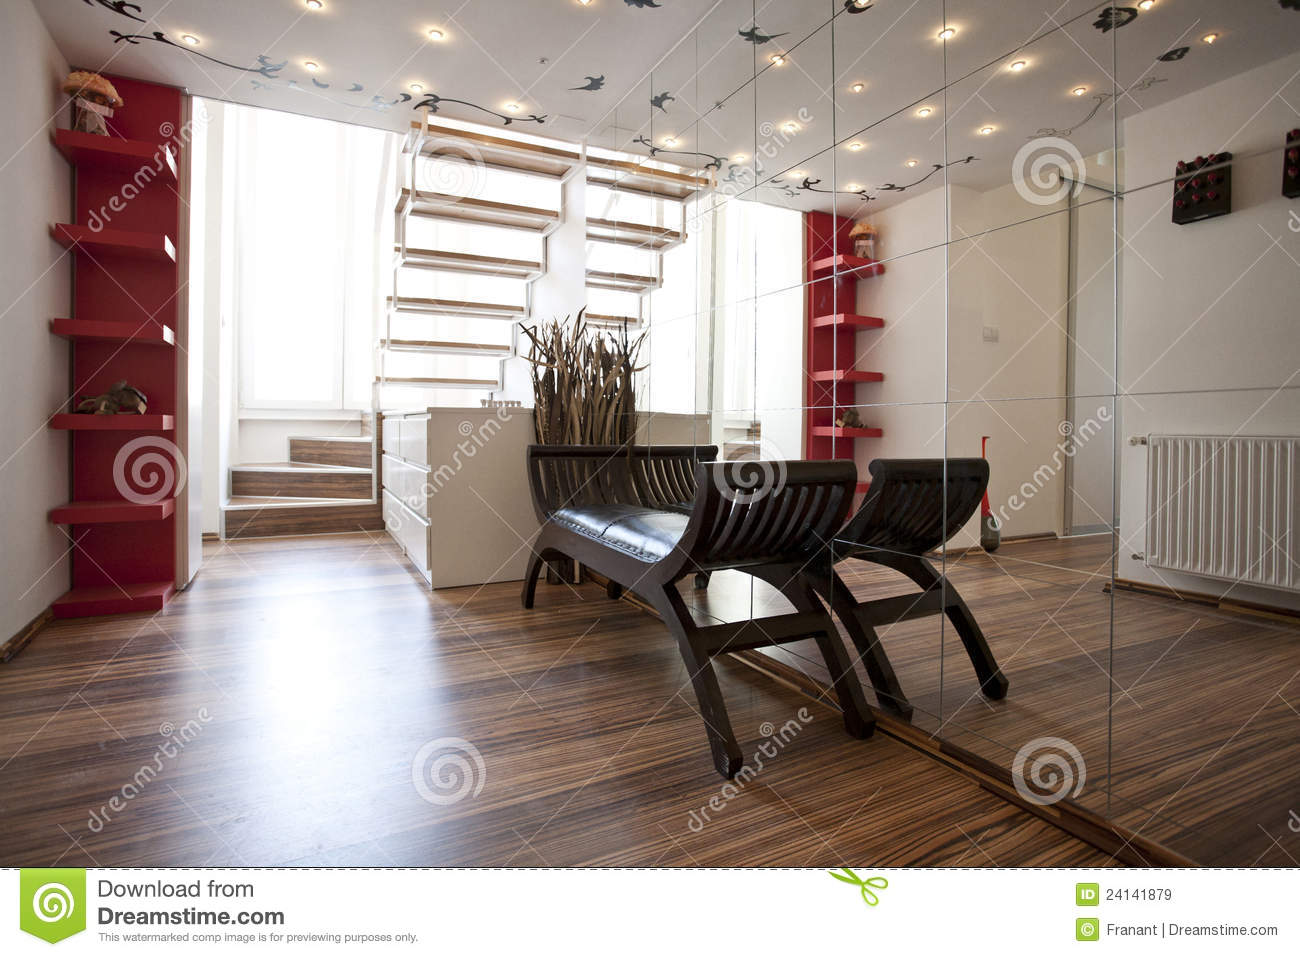 Home lobby interior design royalty free stock images for Interior home